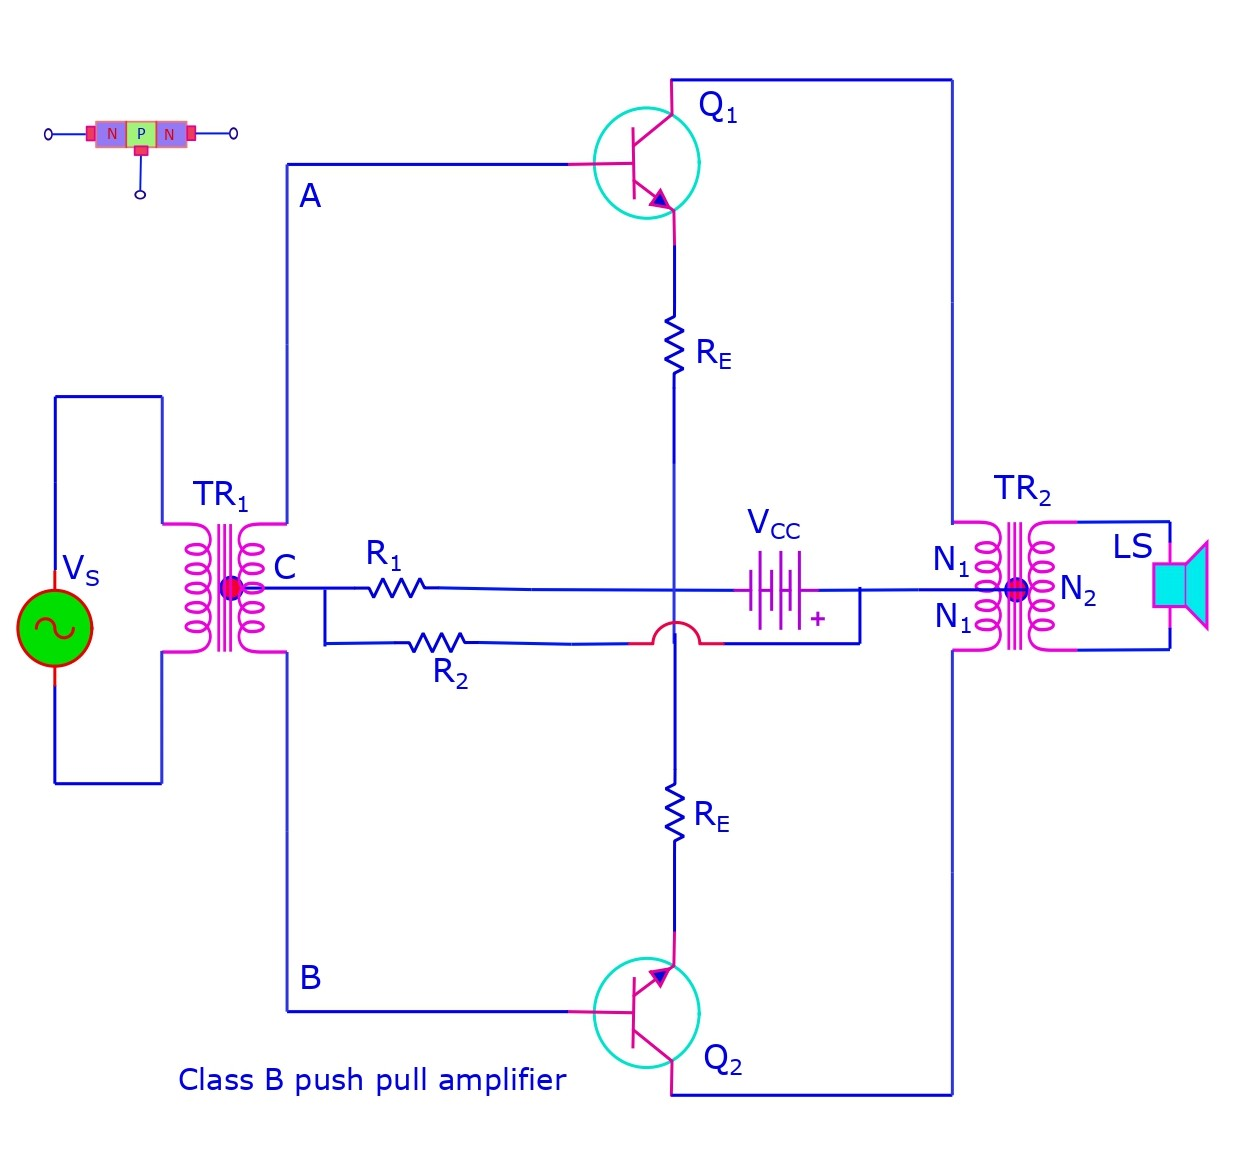 Class B or push pull amplifier circuit.